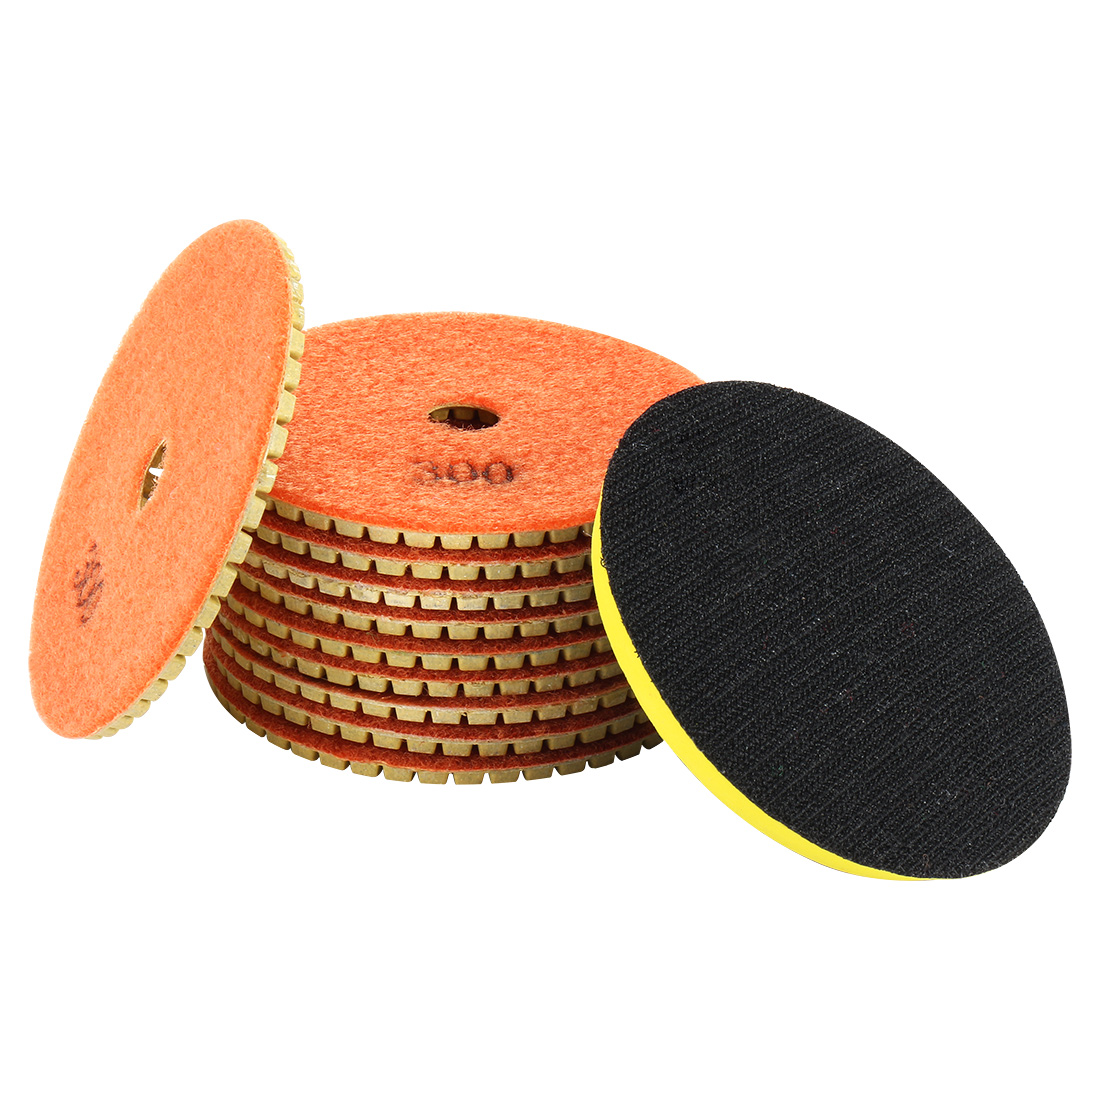 "4"" Diamond Wet Polishing Pad Disc Grit 300 10pcs for Granite Concrete Marble"